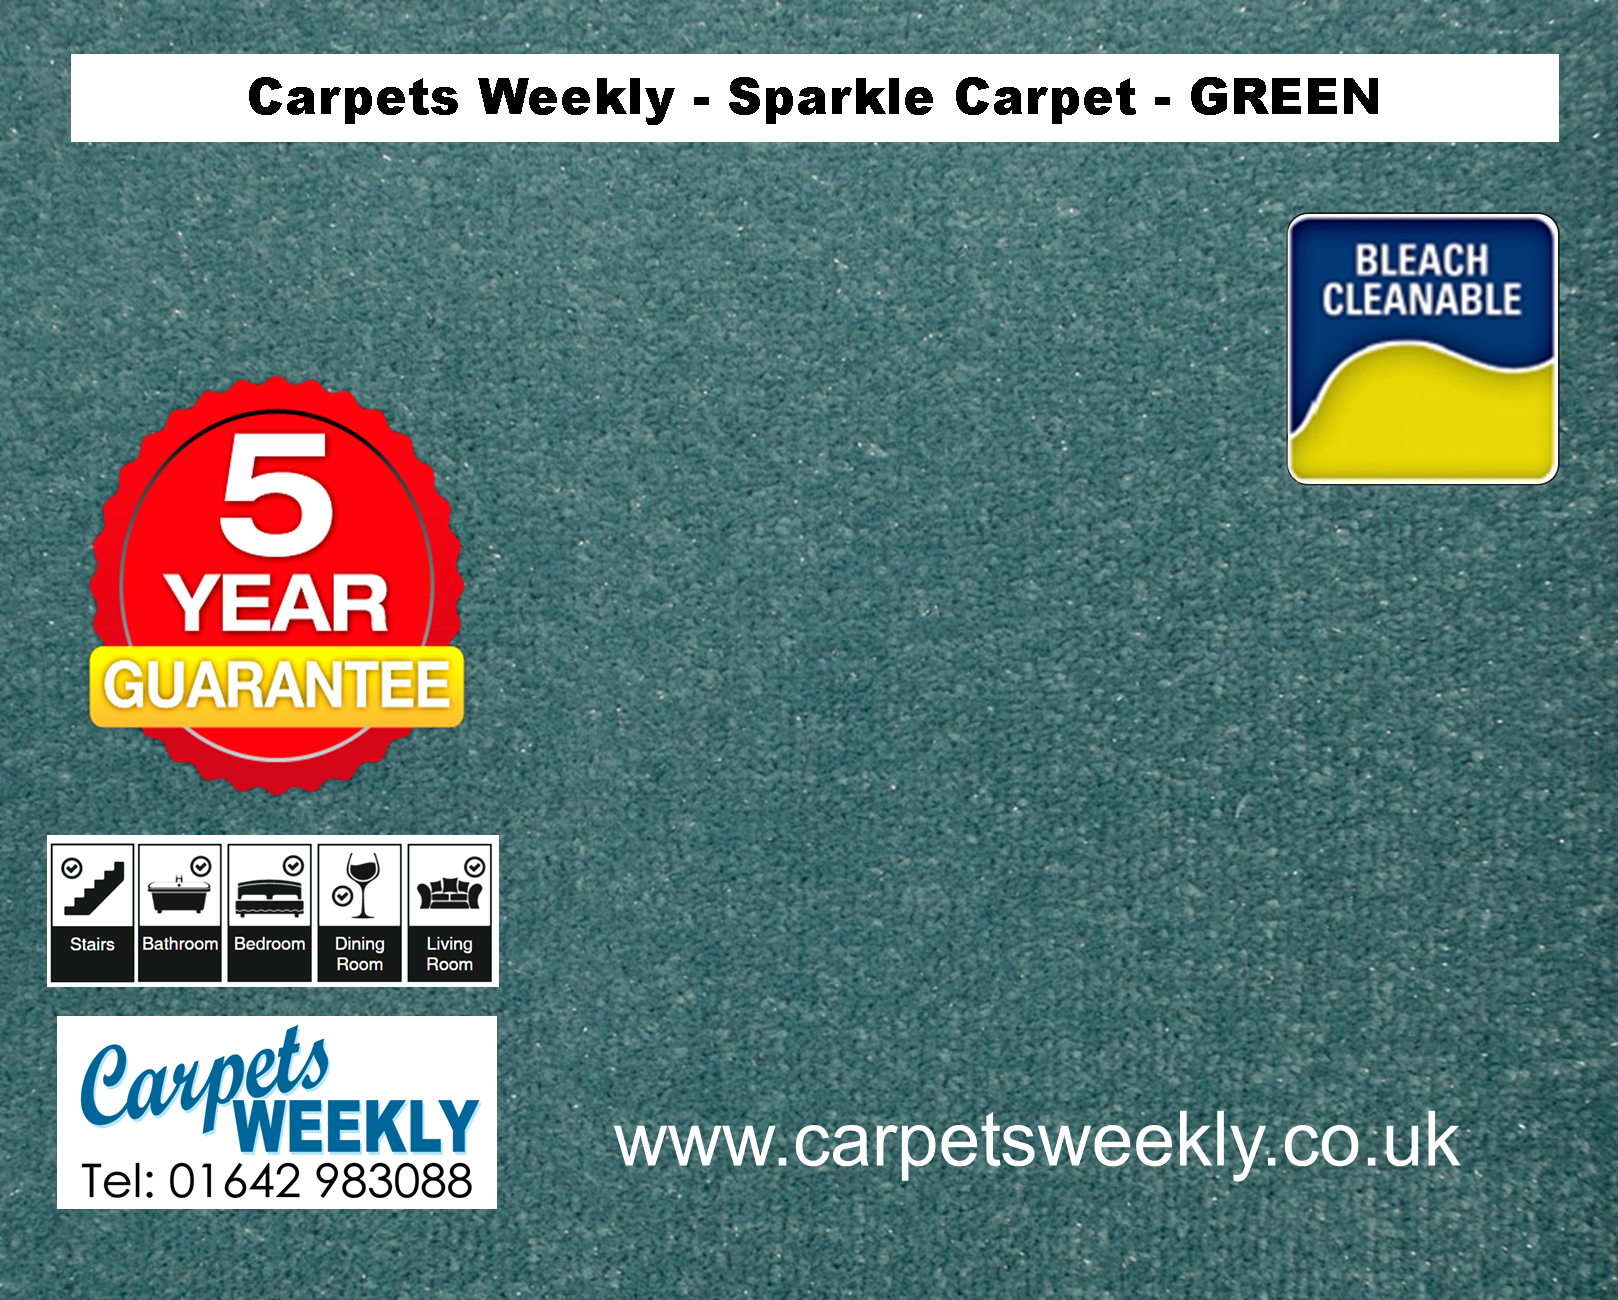 Green Sparkle Carpet from Carpets Weekly